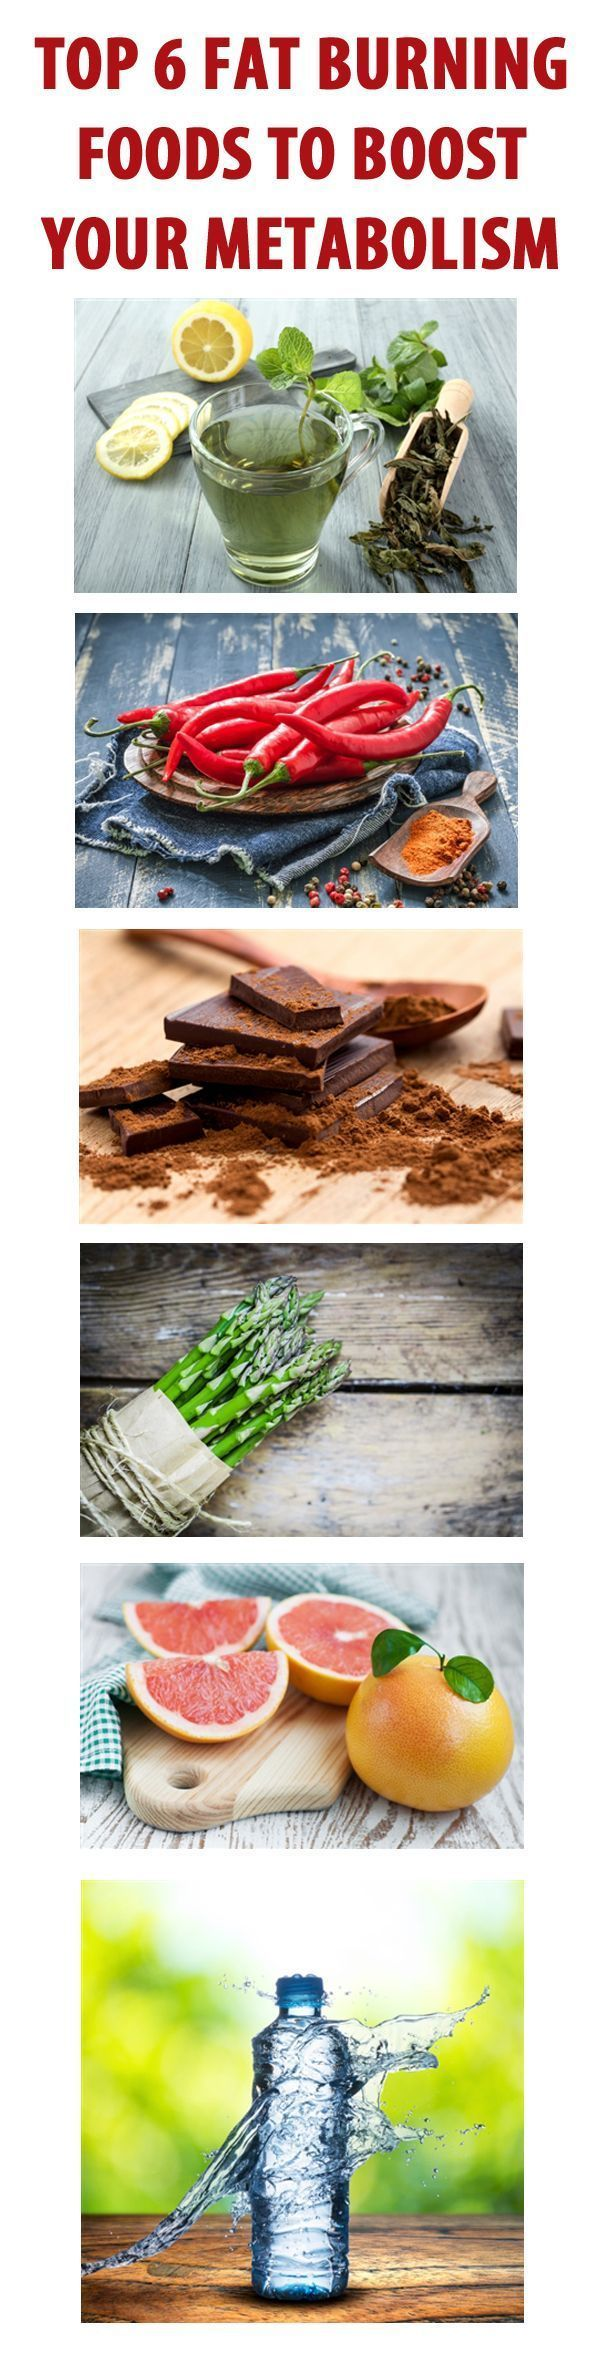 6 FAT BURNING FOODS TO BOOST YOUR METABOLISM:   If you're trying to shift a bit of unwanted flab what you eat is vitally important, and choosing ingredients that speed up your metabolic rate could be the key to amazing results.  Add these to your shopping list and see if you notice the difference... #weightloss #loseweight #nutrition #fatburning